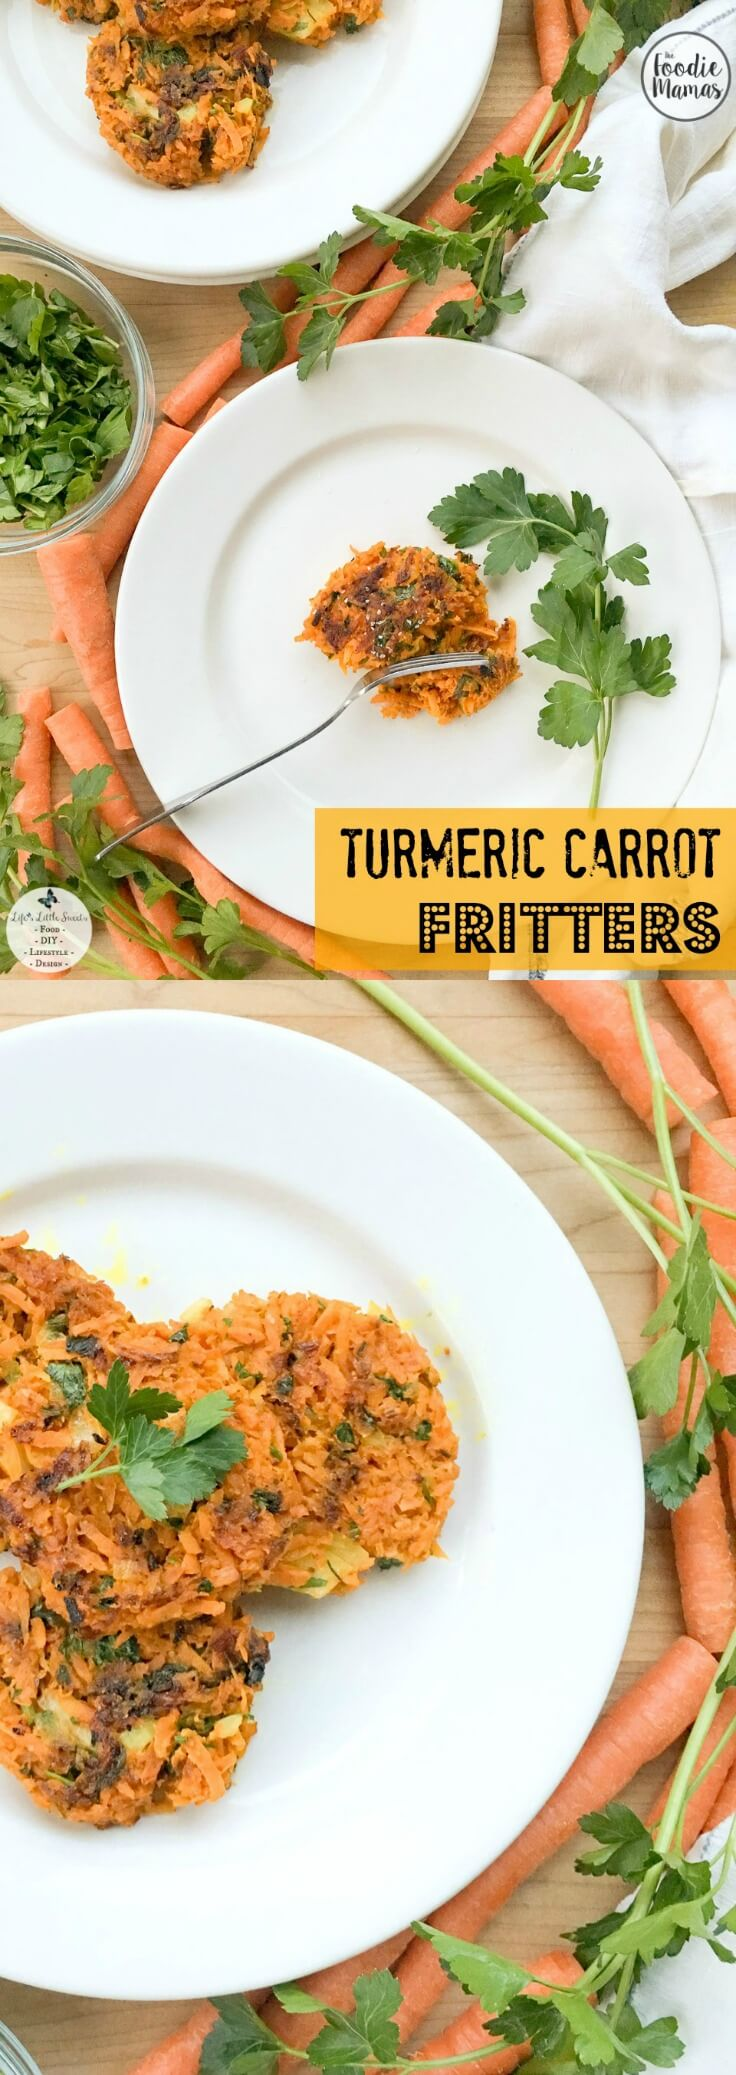 Turmeric Carrot Fritters (V + GF) are a healthier, gluten-free addition to any brunch, lunch or dinner. Tender fritters packed with vitamin-rich carrots, anti-inflammatory turmeric, ground flaxseed and Italian parsley these complimentary flavors are both healthy and delicious! Check out #FoodieMamas 8 mouthwatering carrot recipes!